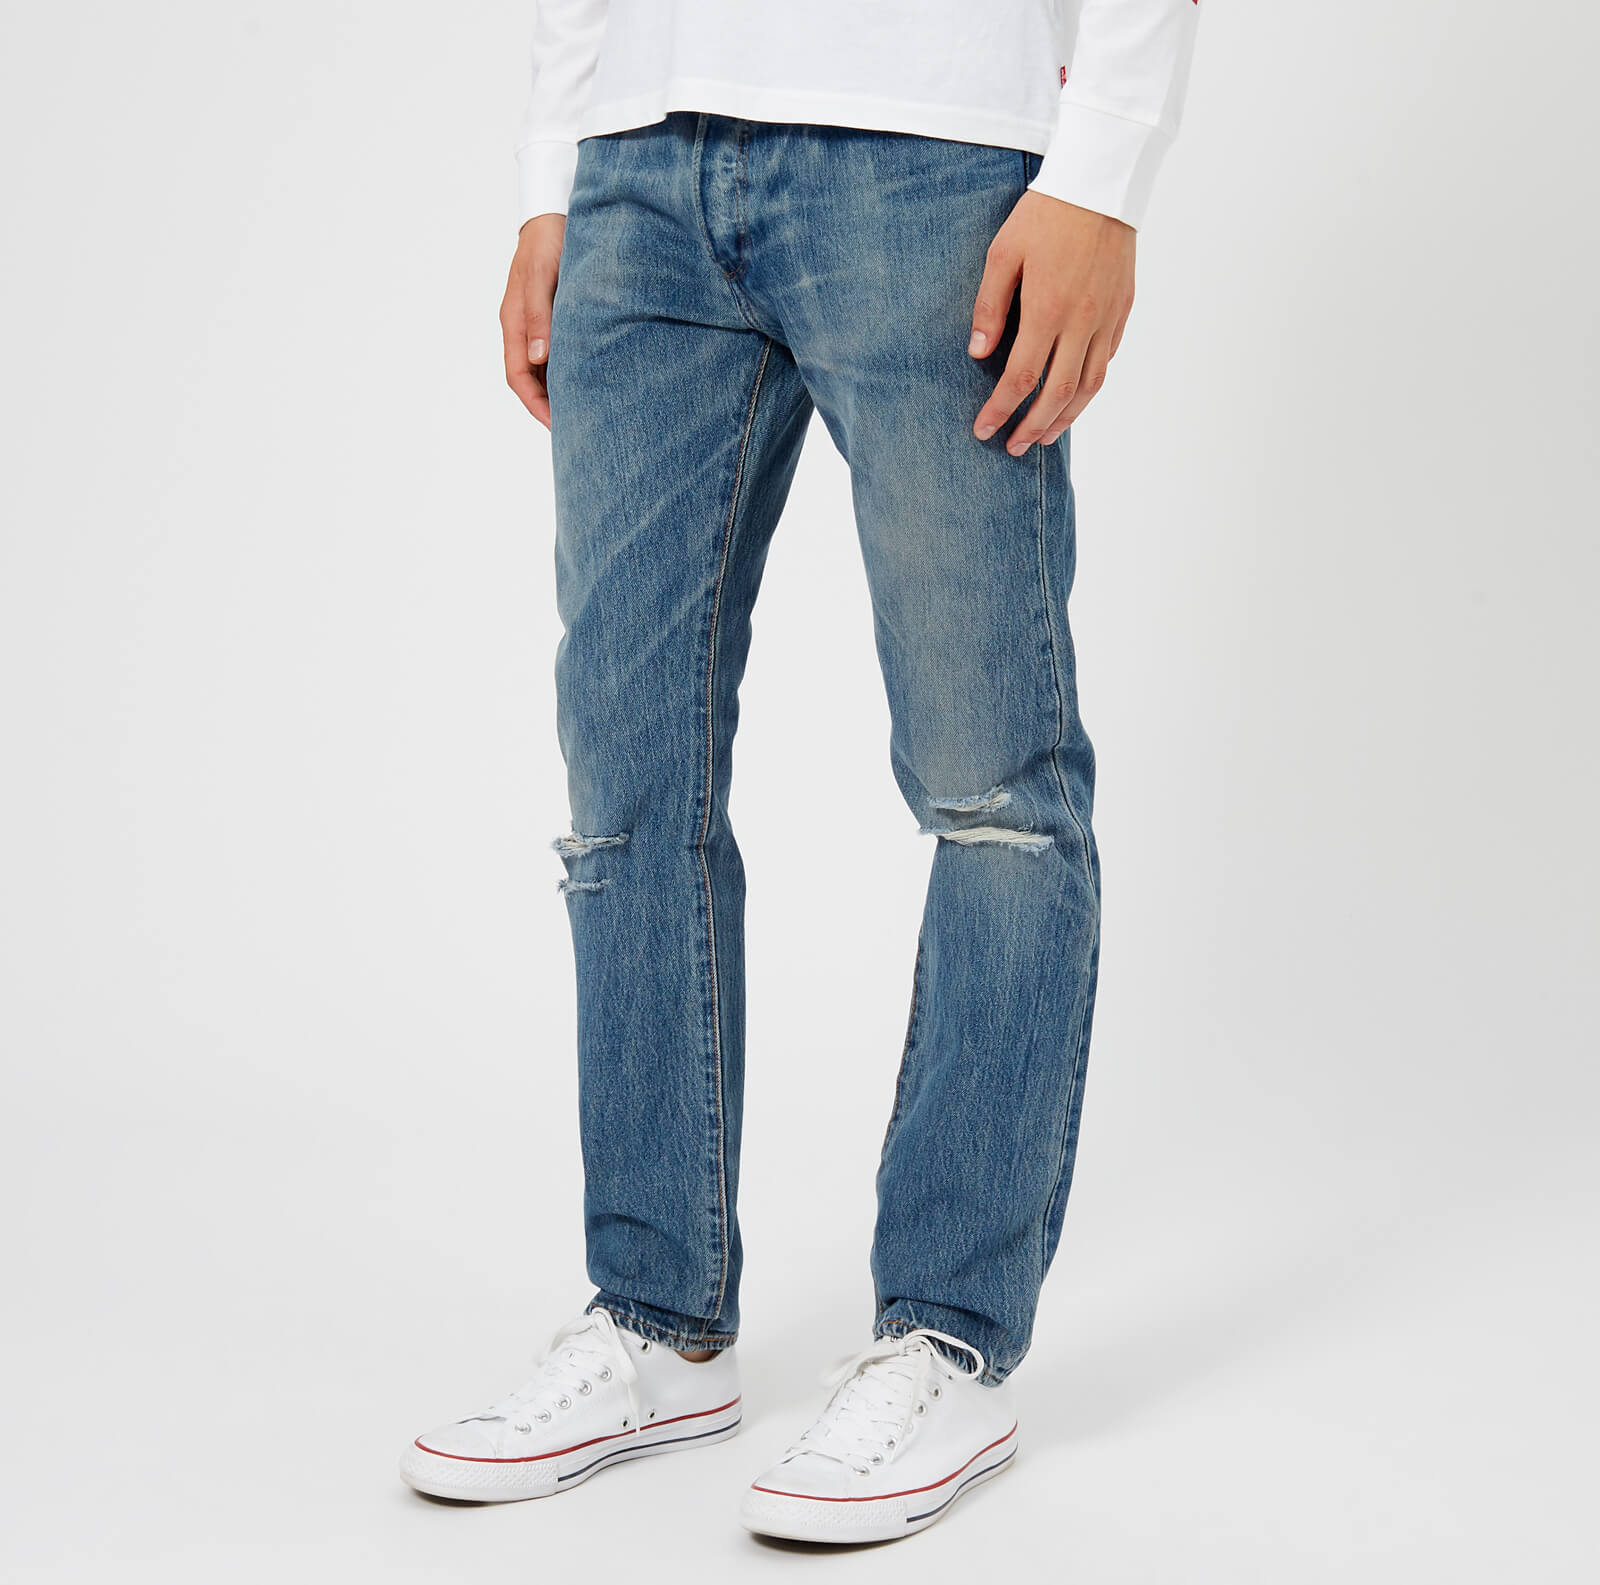 f568f13fdfe Levi's Men's 501 Skinny Jeans - Single Payer Warp - Free UK Delivery over  £50